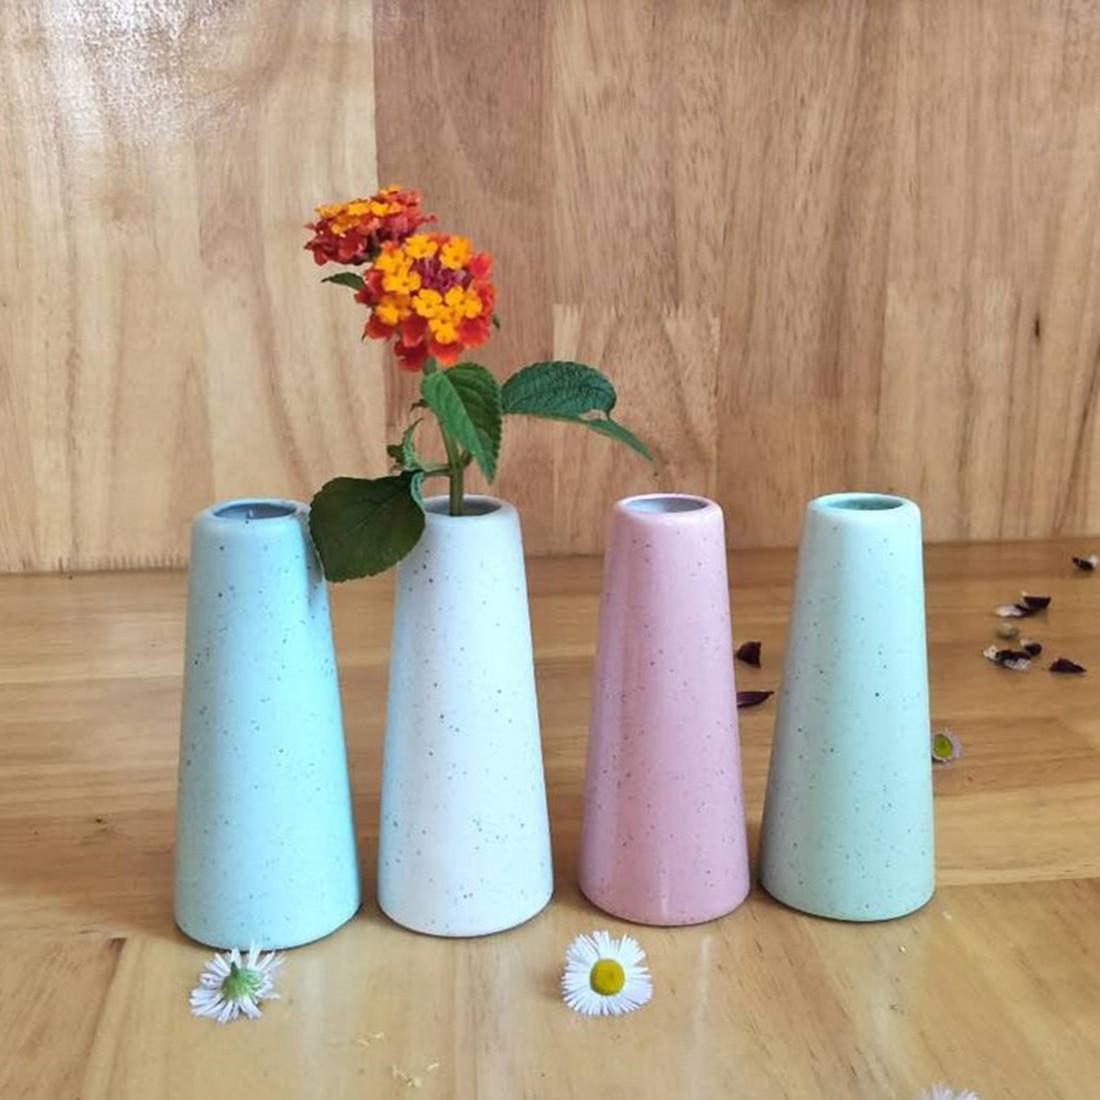 chinese flower vase of flower vases for homes mini ceramic tabletop vase for flowers home in flower vases for homes mini ceramic tabletop vase for flowers home room study hallway office wedding decor pink skyblue white in vases from home garden on